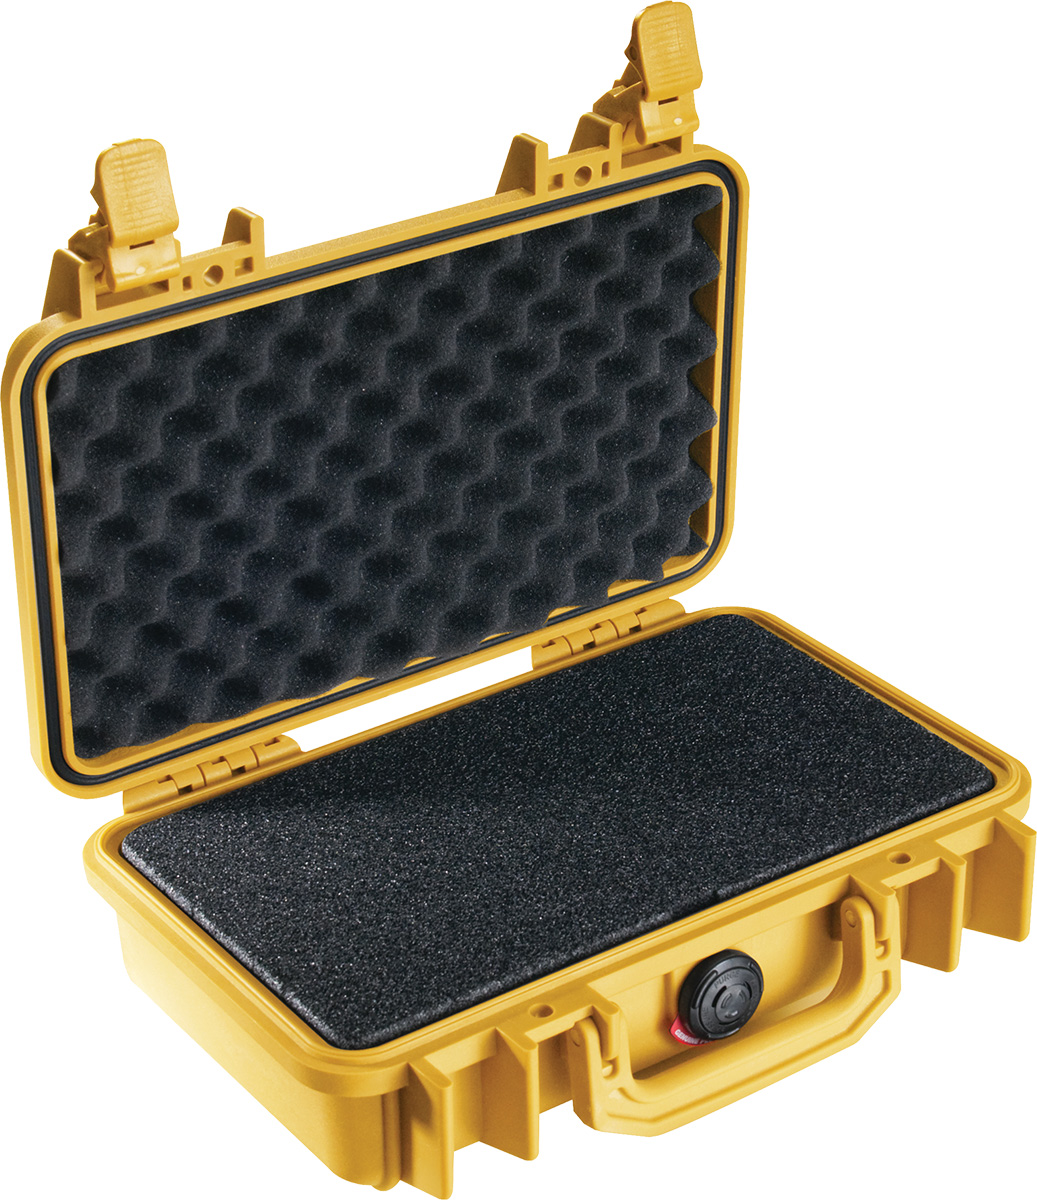 pelican 1170 yellow foam weapon case